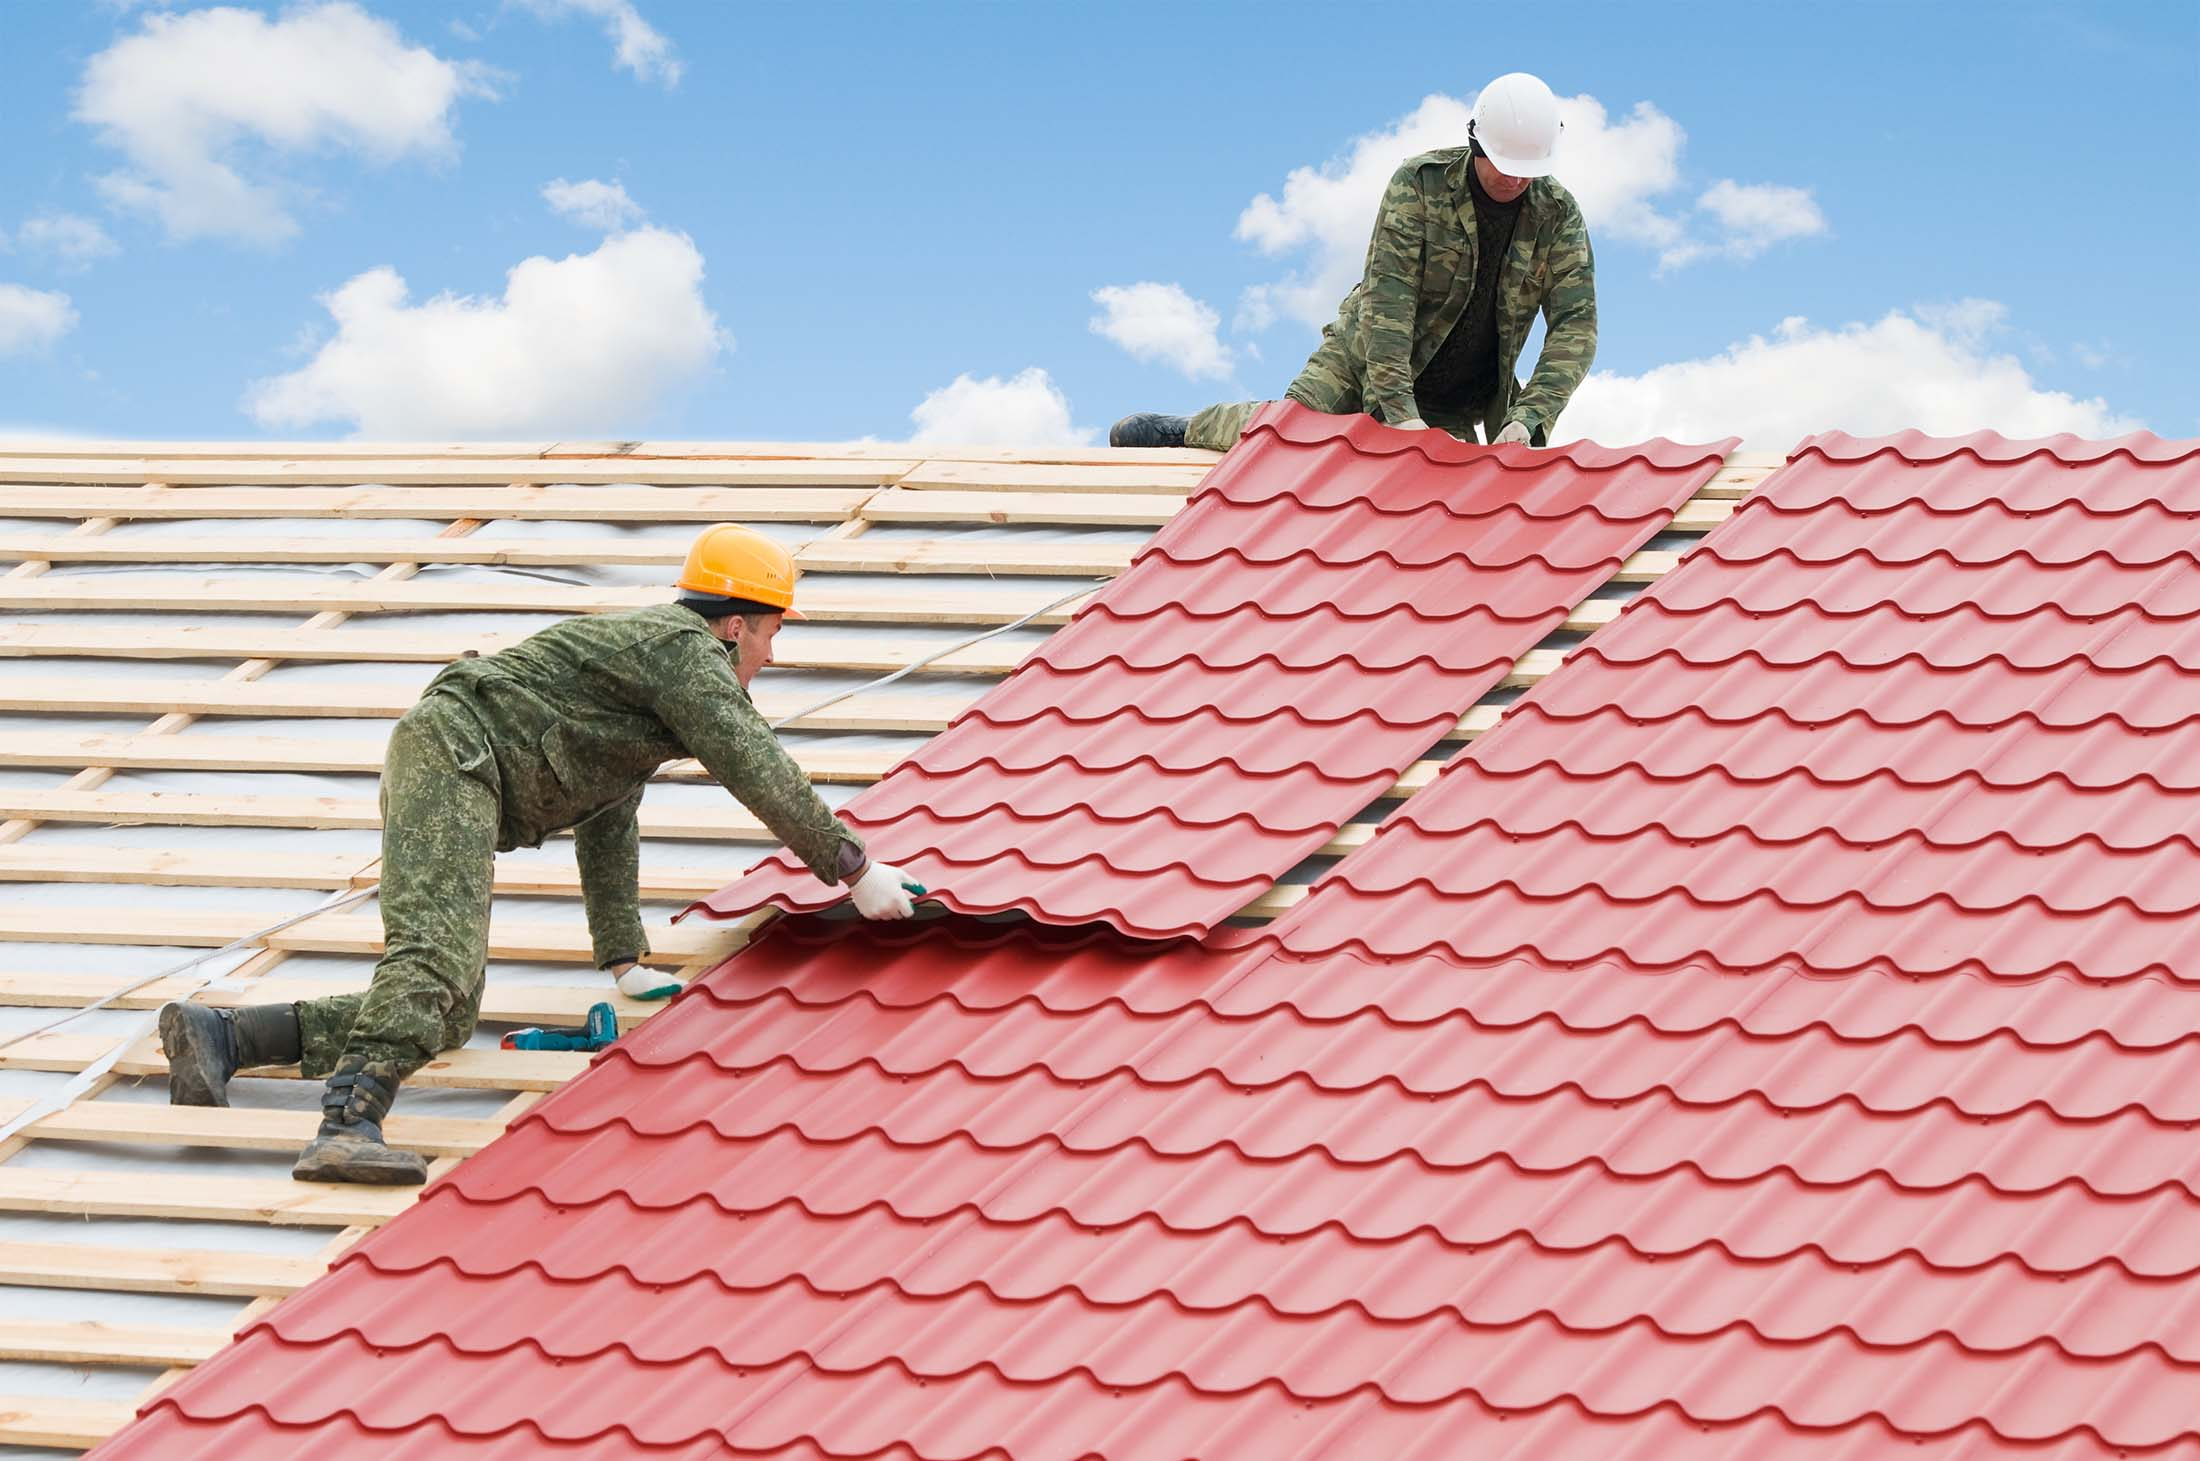 Roofing inalling metal materials